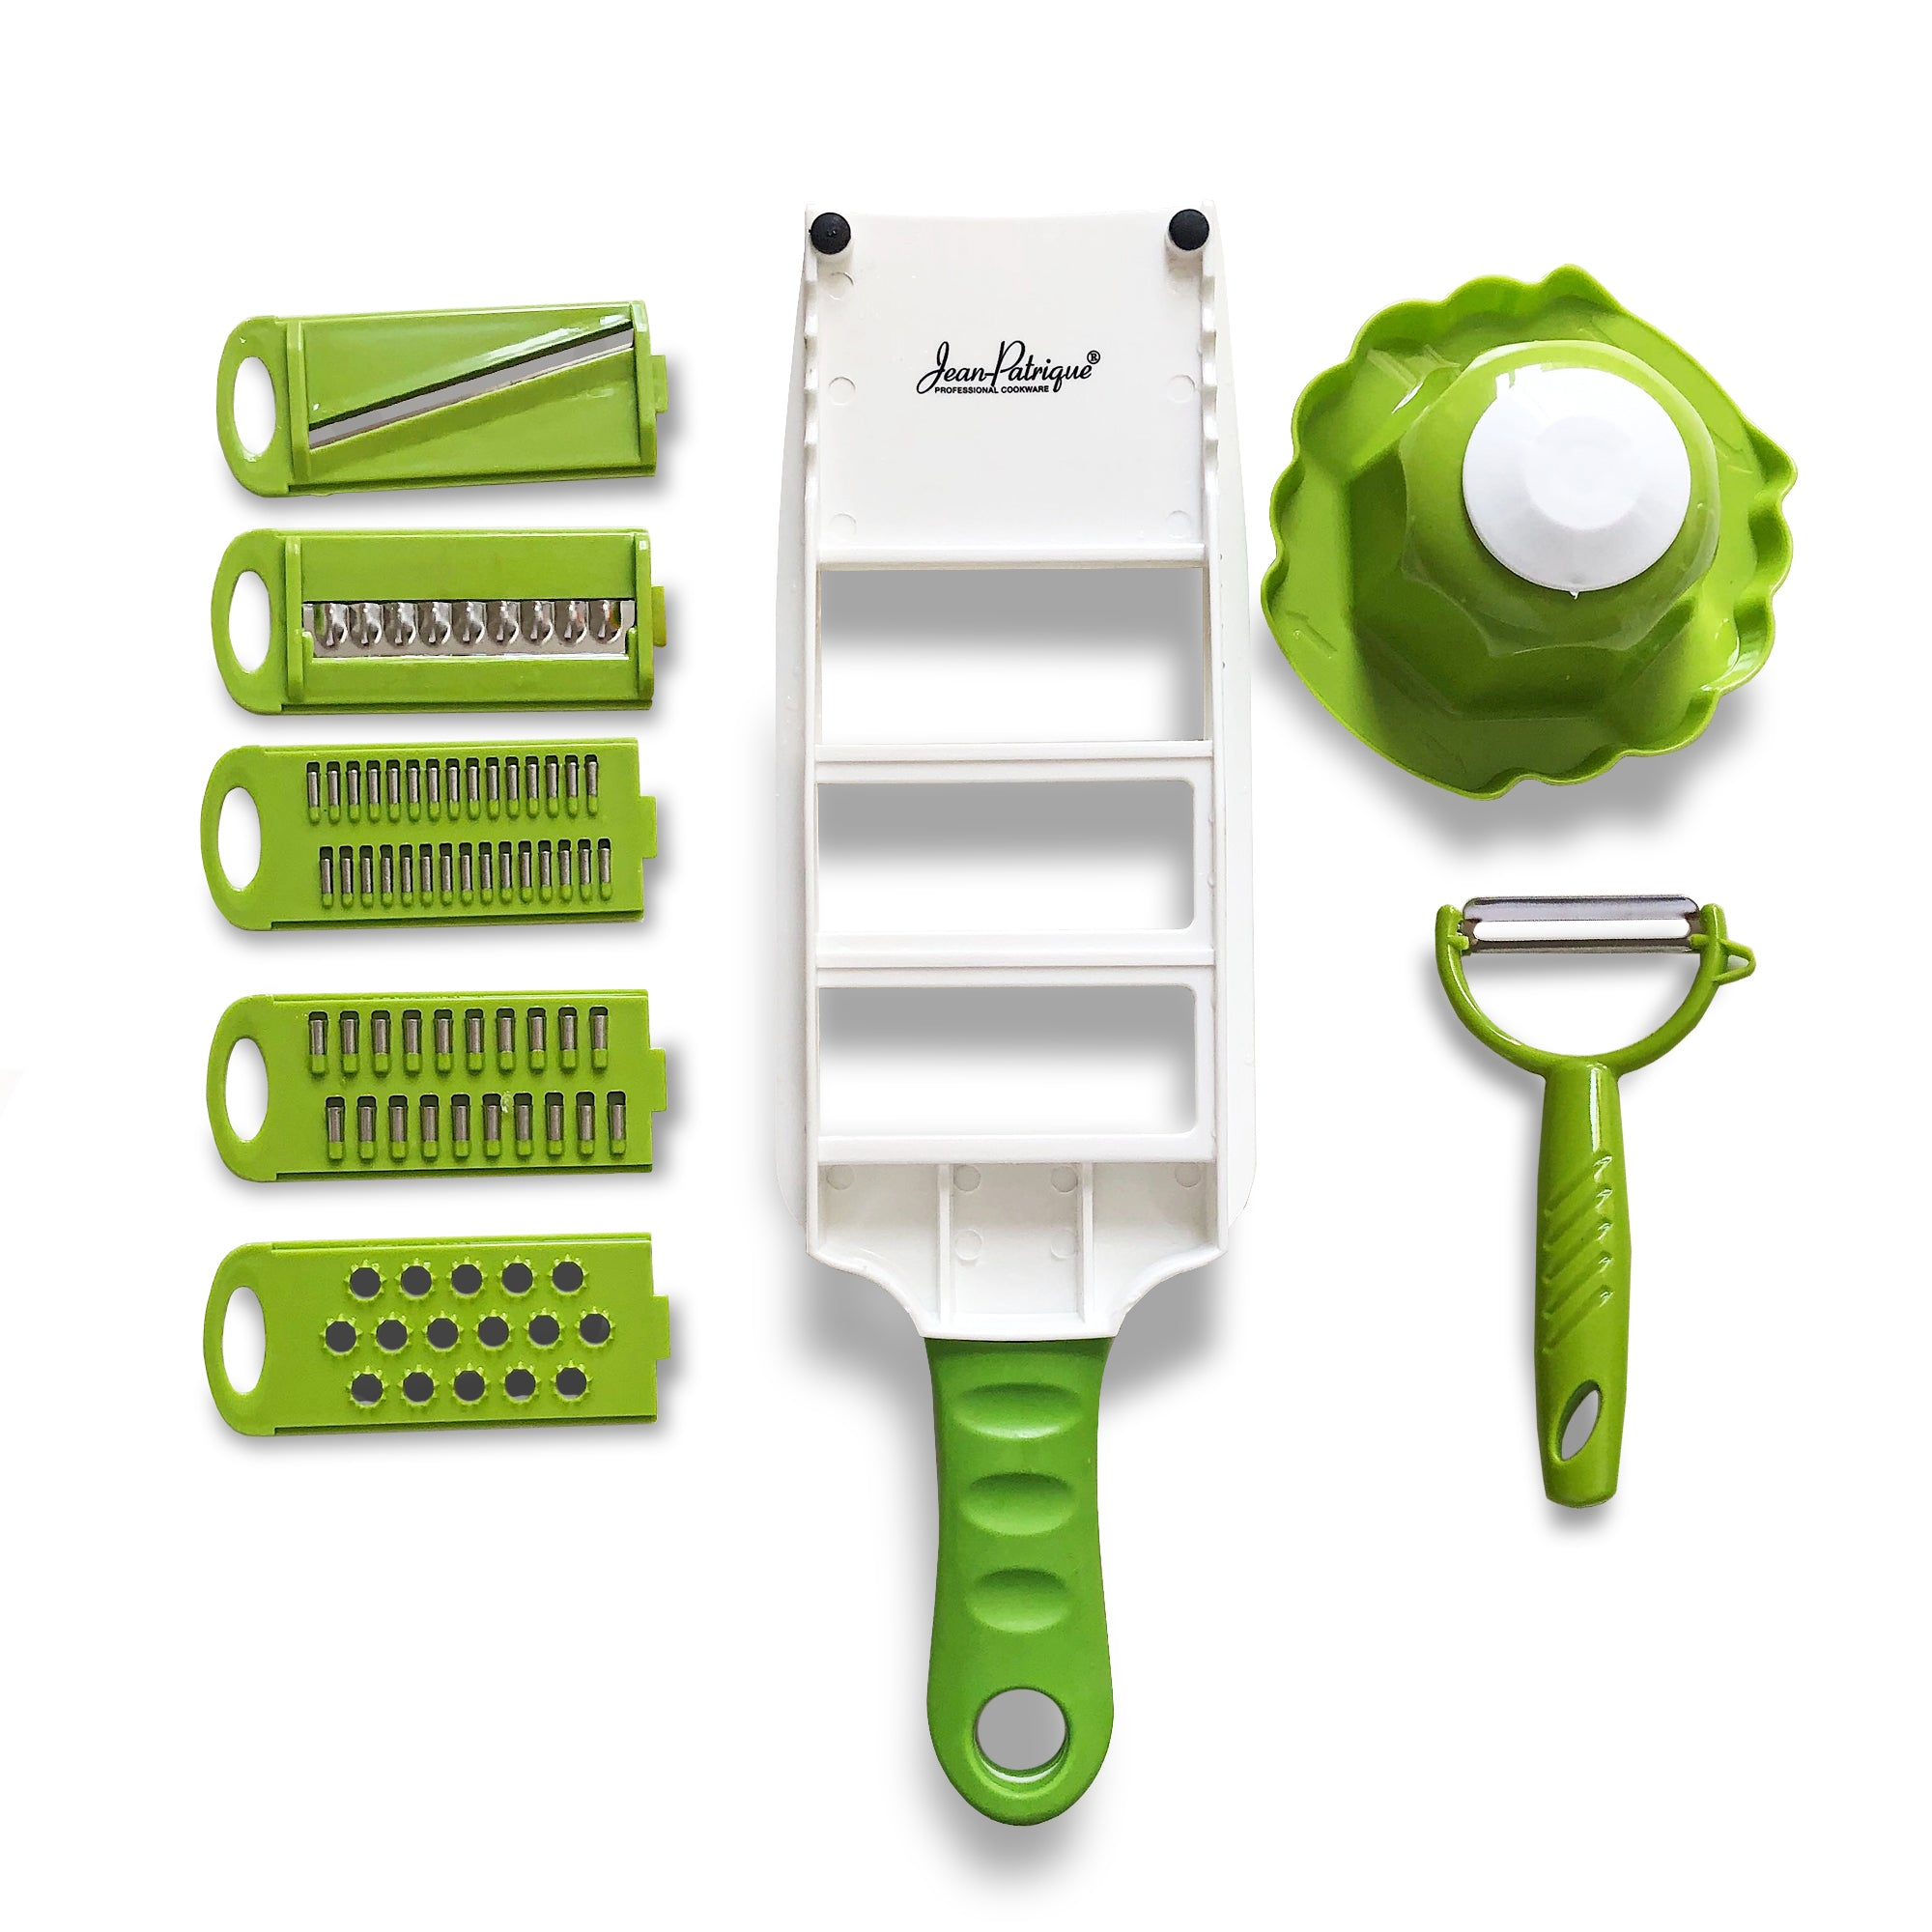 5 in 1 Handheld Vegetable Slicer & Grater